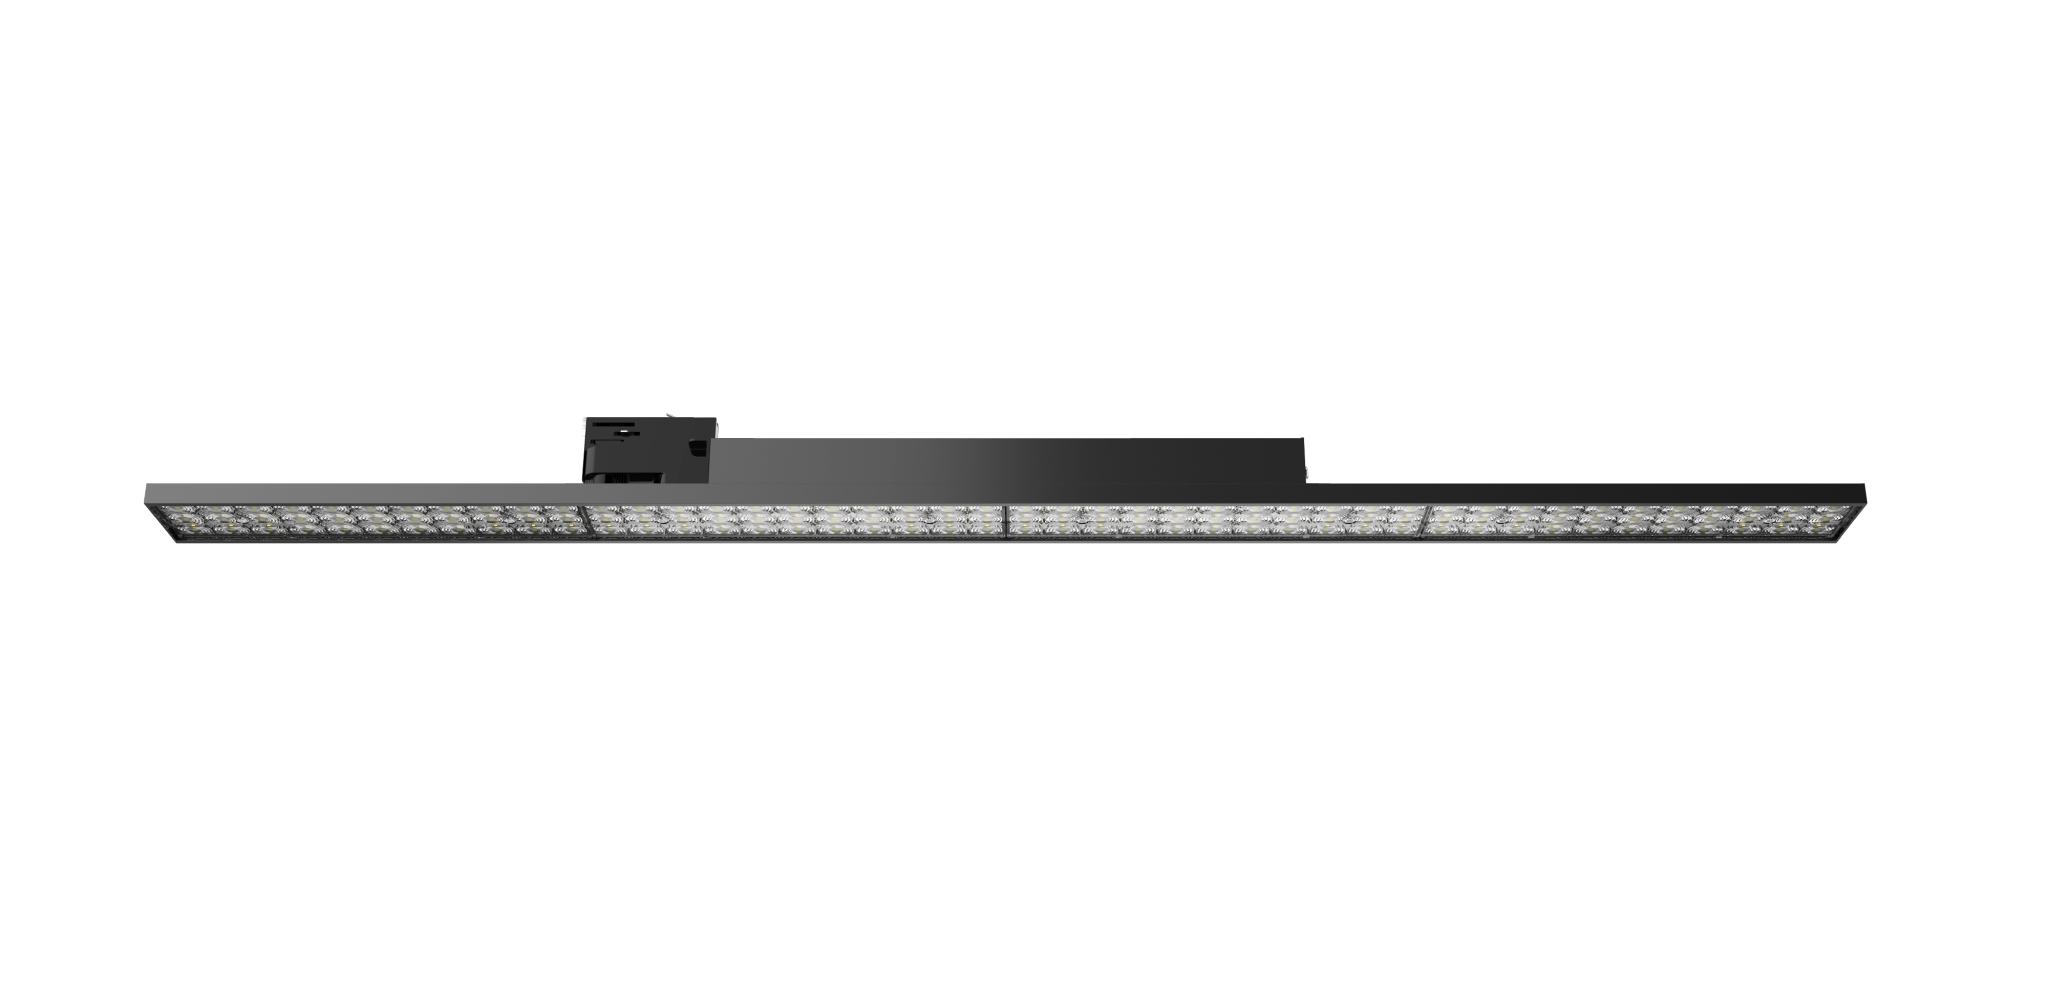 Type D with lens Linear LED Track Light 40w/60w led track light 130lm/w 5